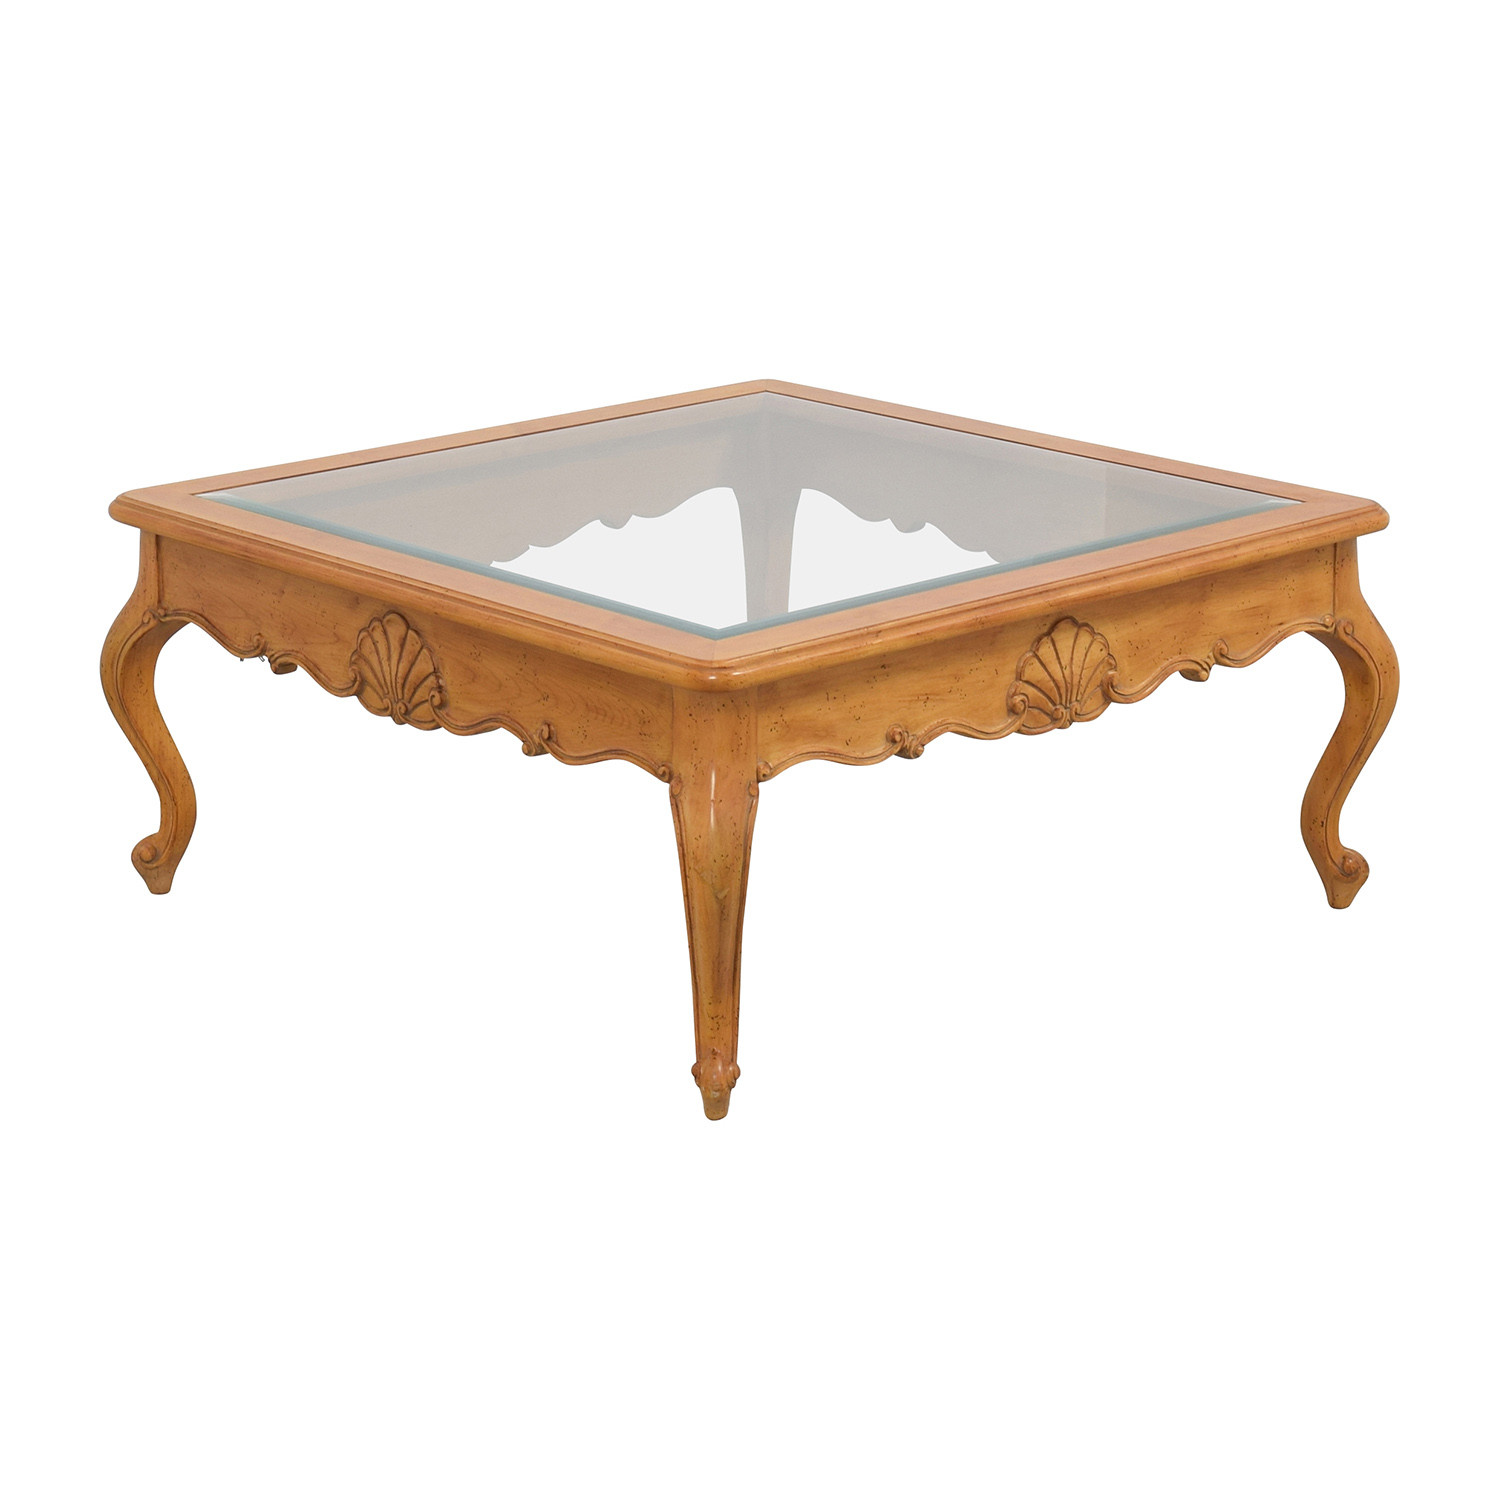 Best ideas about Wood And Glass Coffee Table . Save or Pin OFF Scroll Light Wood Glass Coffee Table Tables Now.